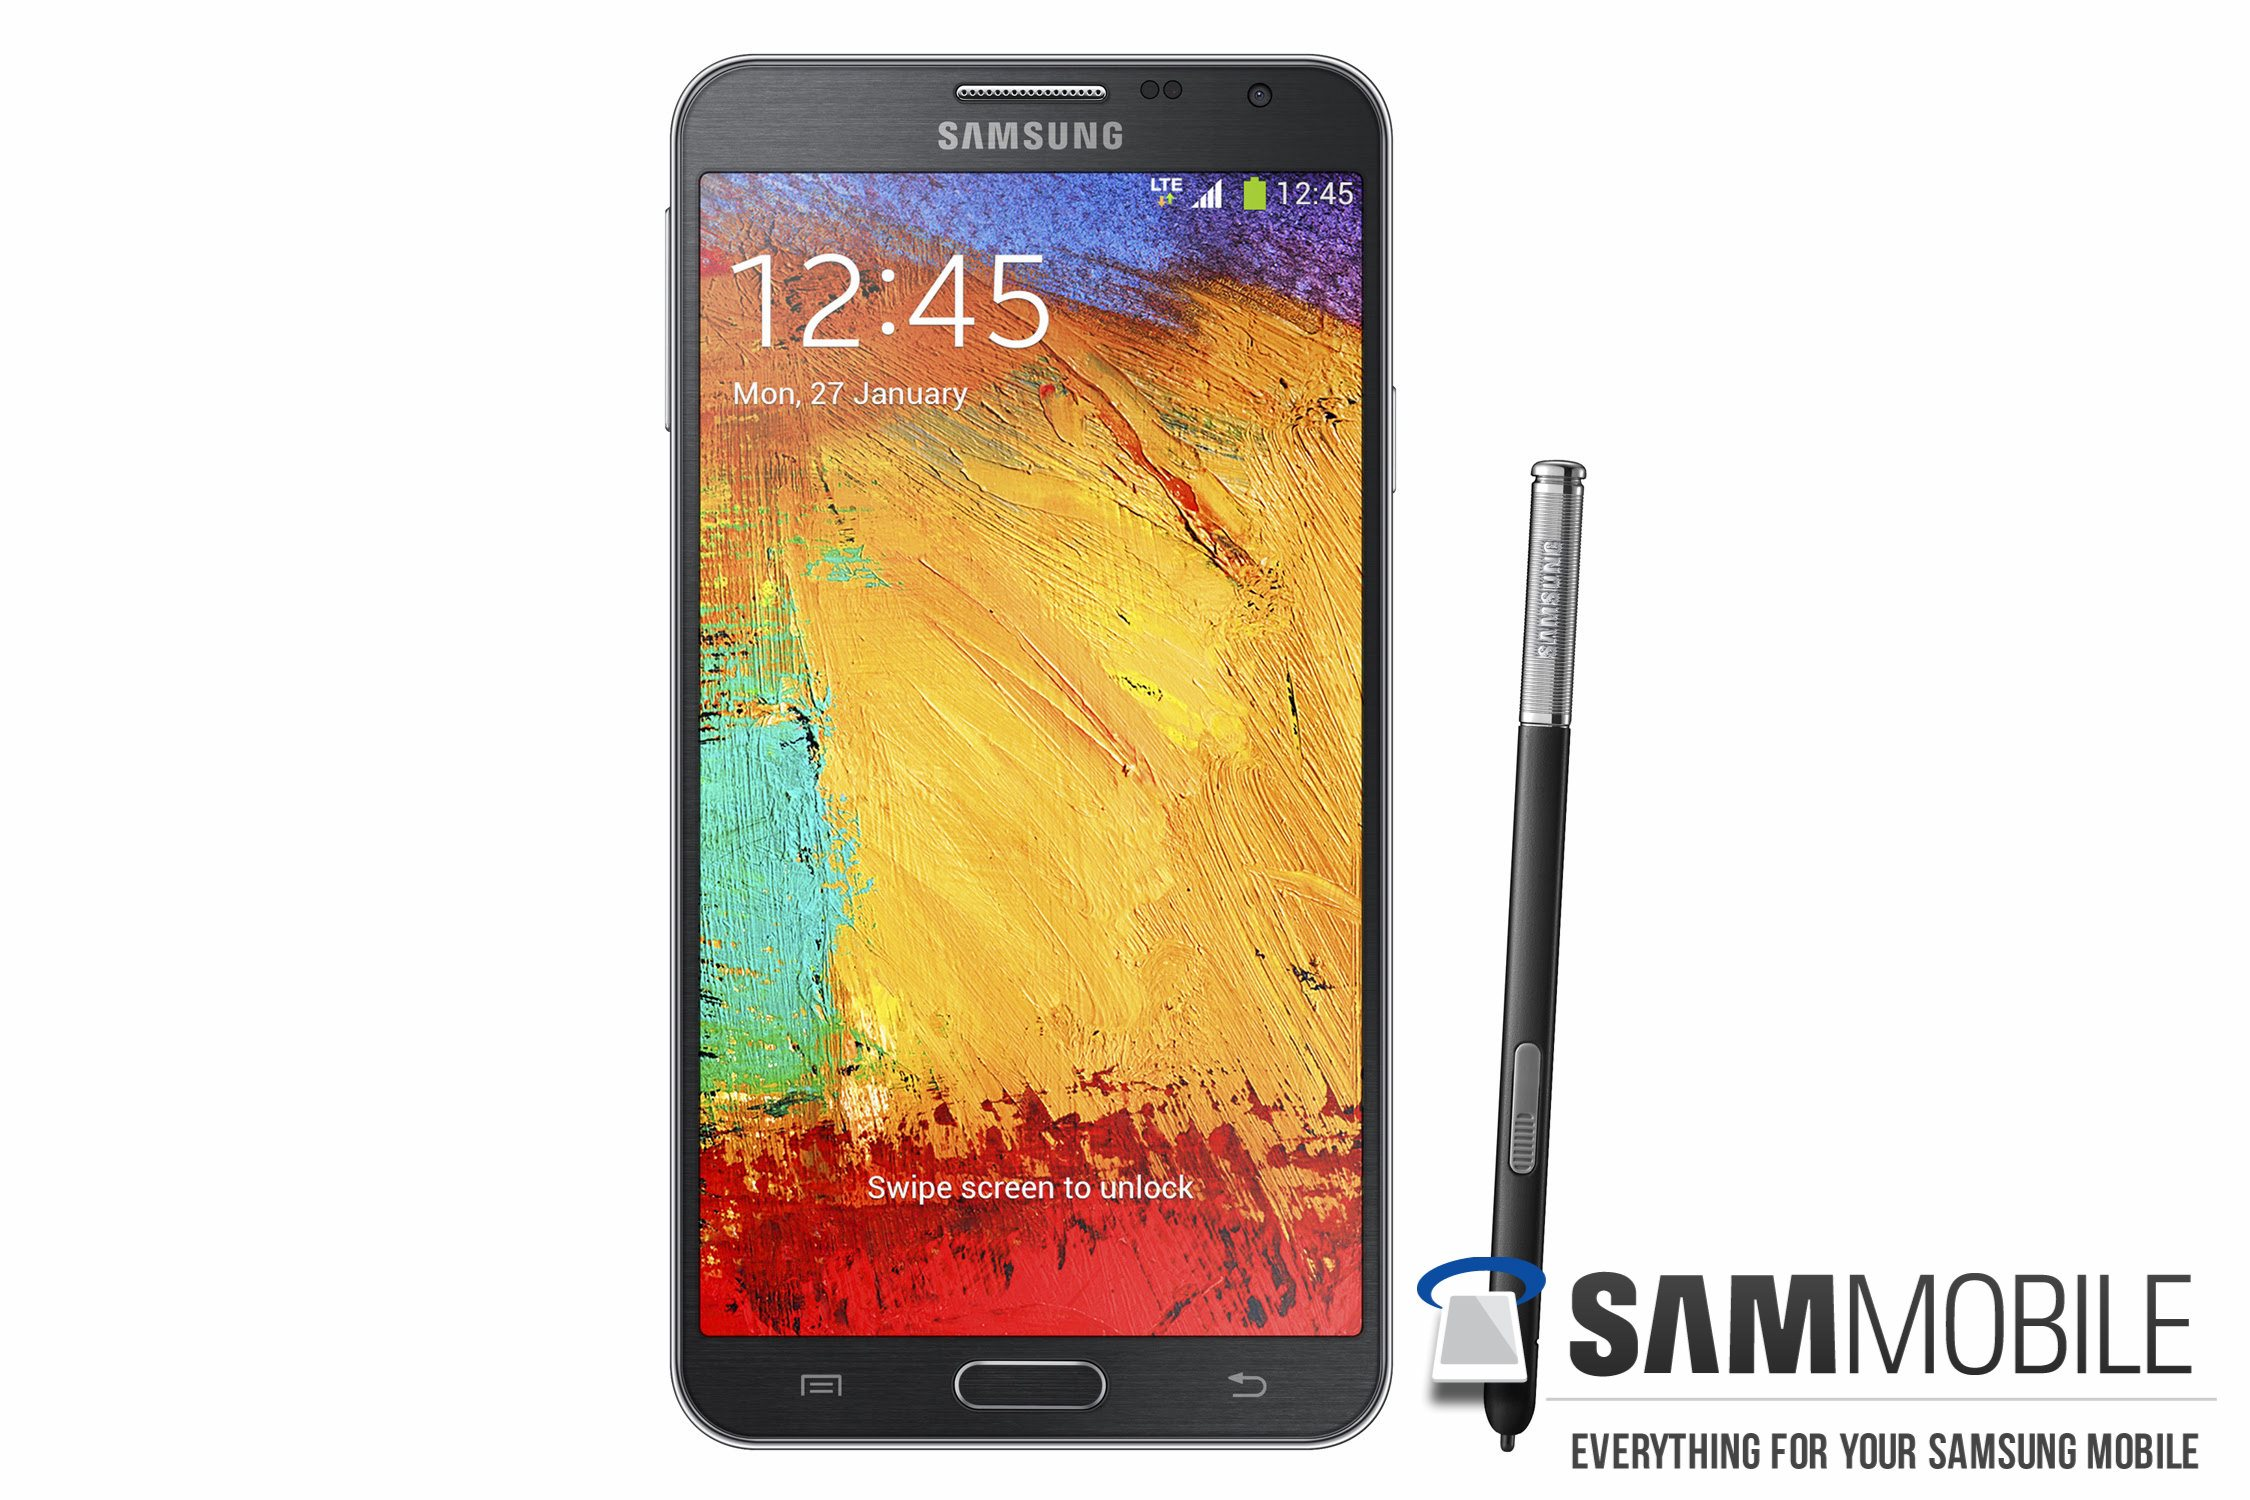 Samsung Galaxy Note 3 Neo is out and avialable now!